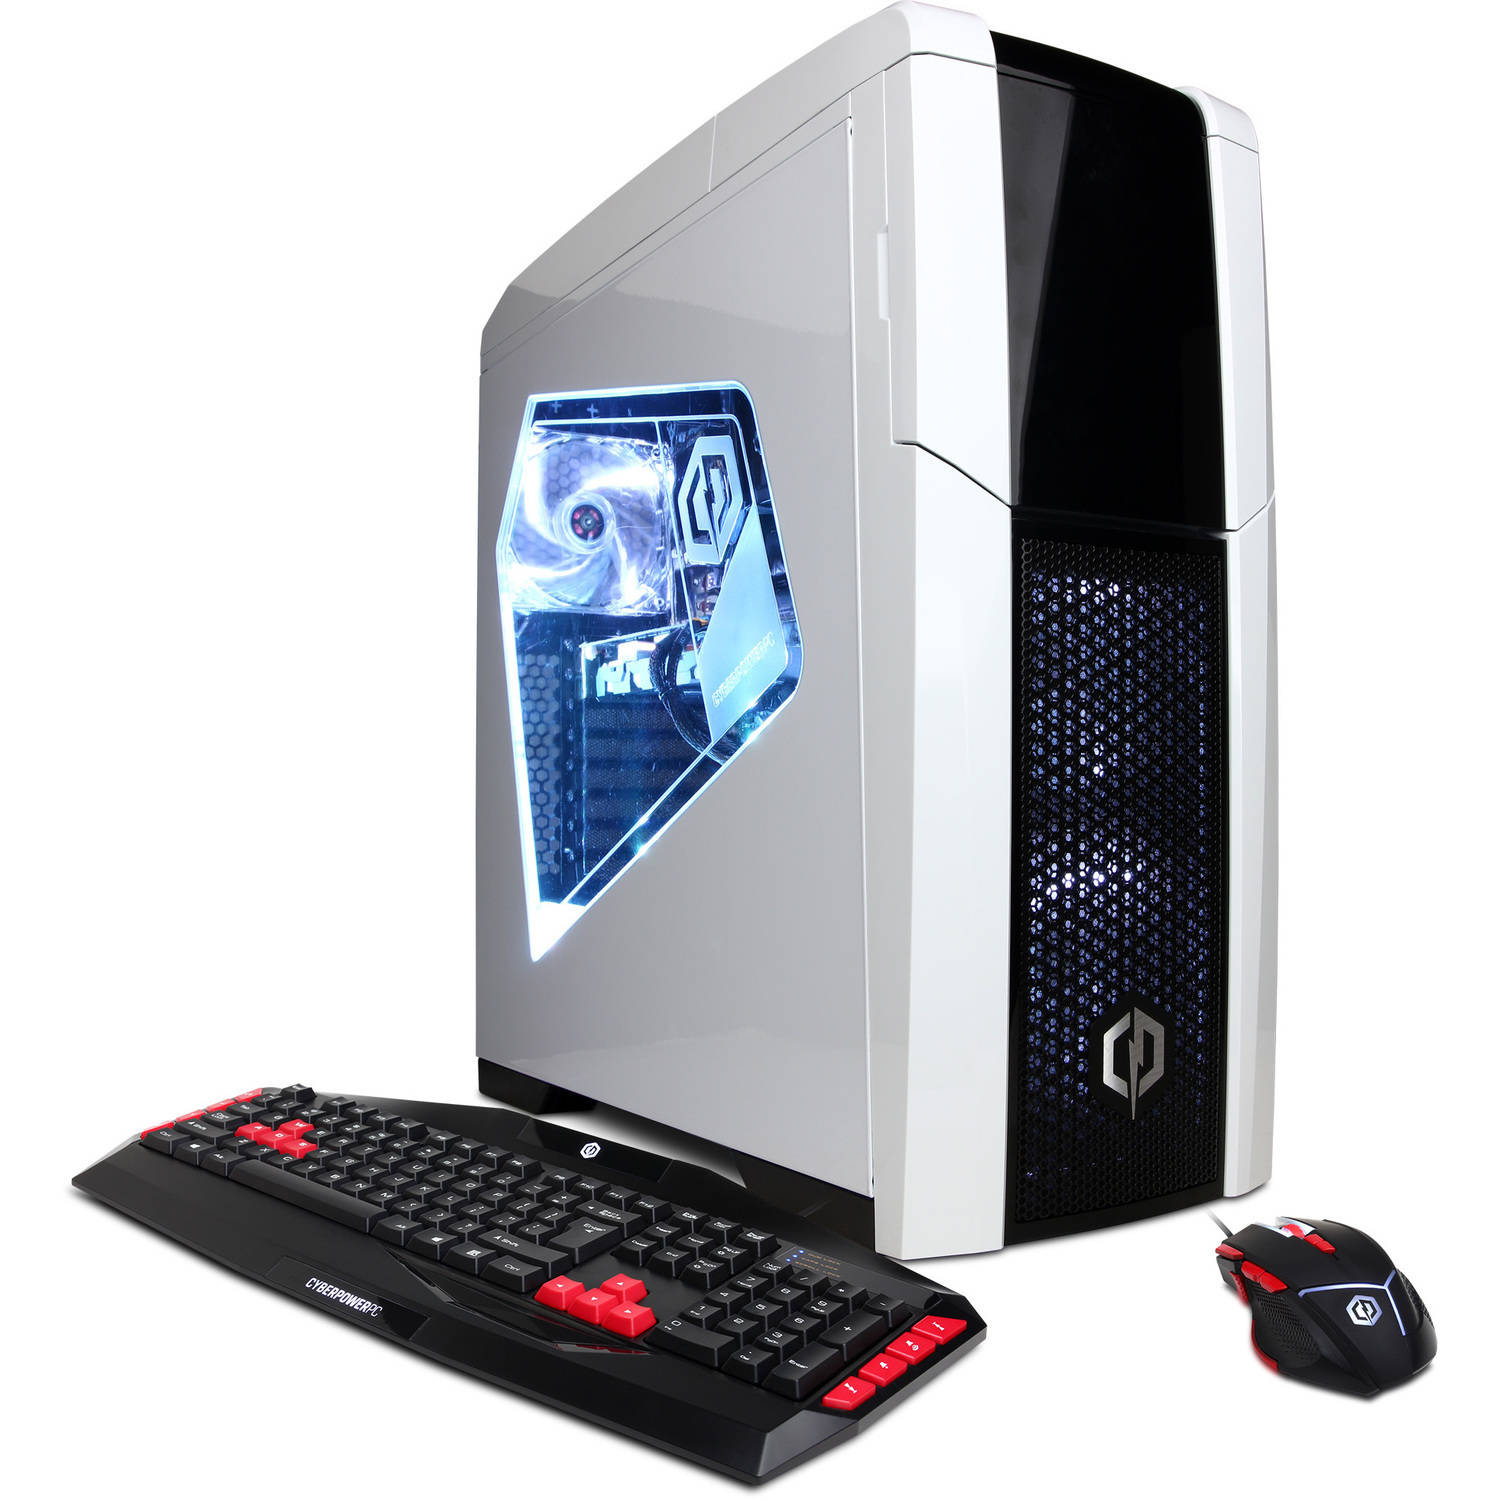 CyberPowerPC Gamer Ultra GUA4900W Gaming Desktop PC with AMD FX-4300 Processor, 8GB Memory, 1TB Hard Drive and Windows 10 Home (Monitor Not Included)